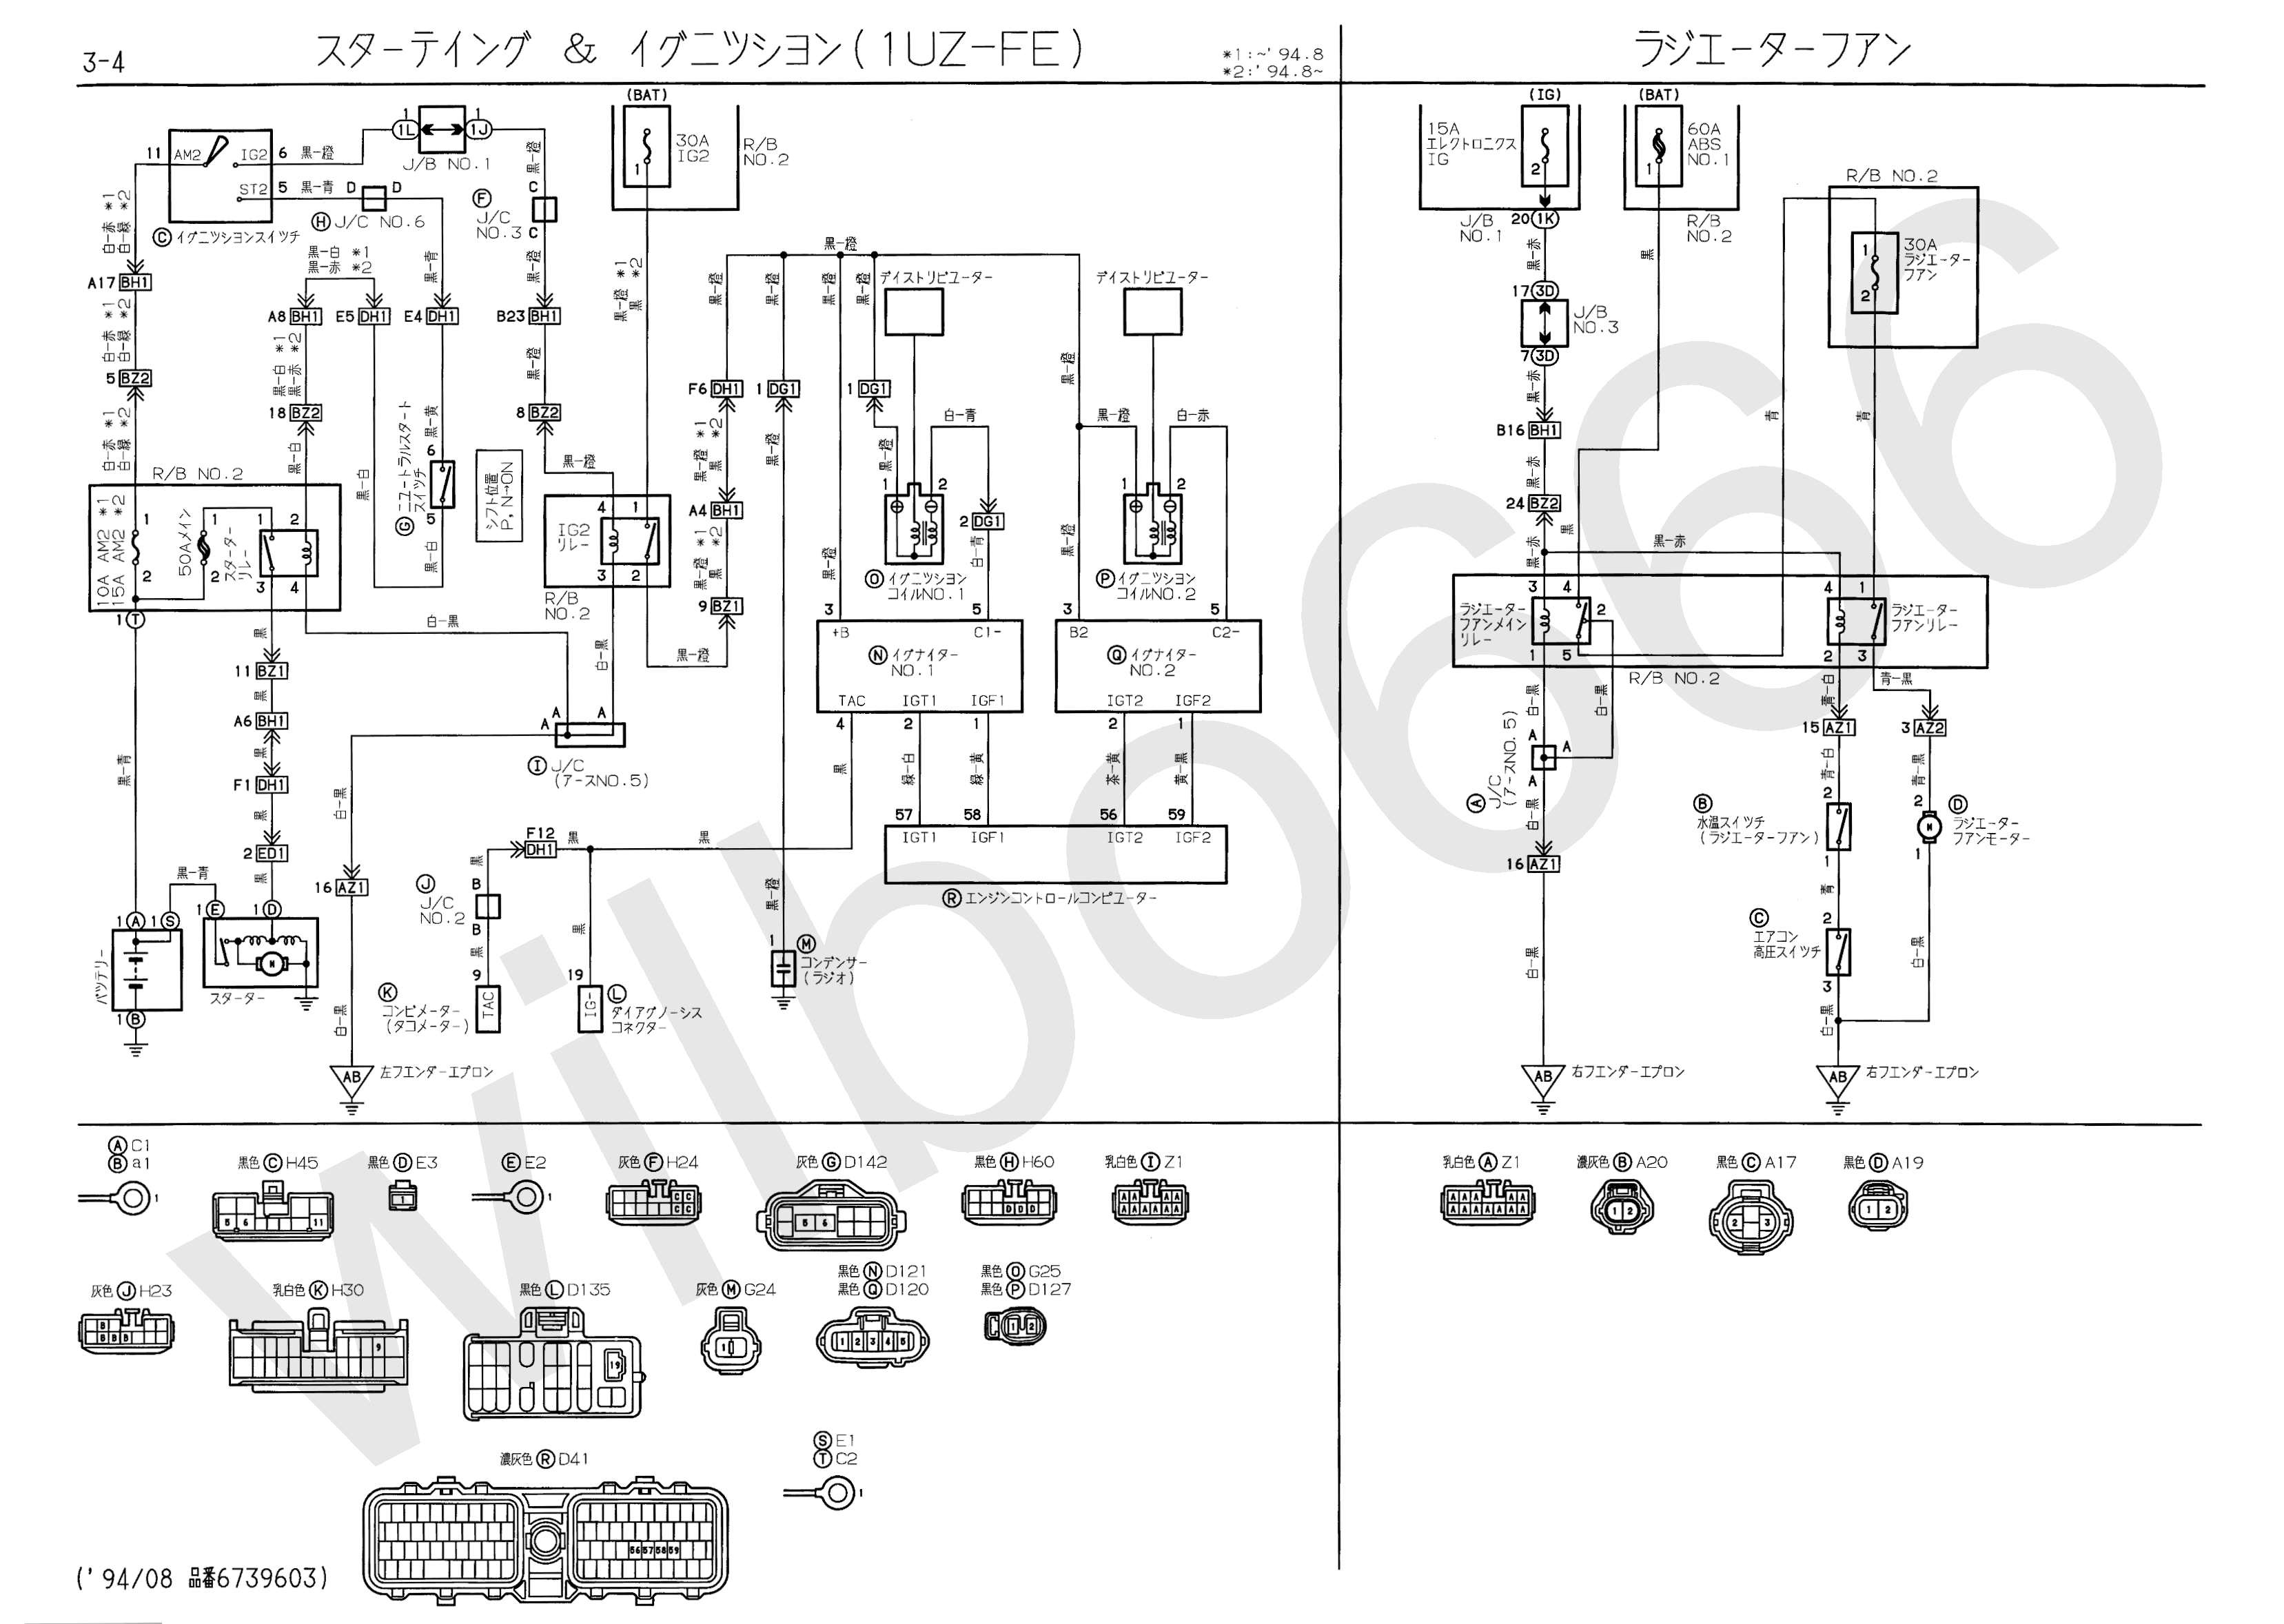 91 240sx knock sensor wiring diagram 91 auto wiring diagram database wiring knock diagram sensor 91 300zx wiring trailer wiring on 91 240sx knock sensor wiring diagram